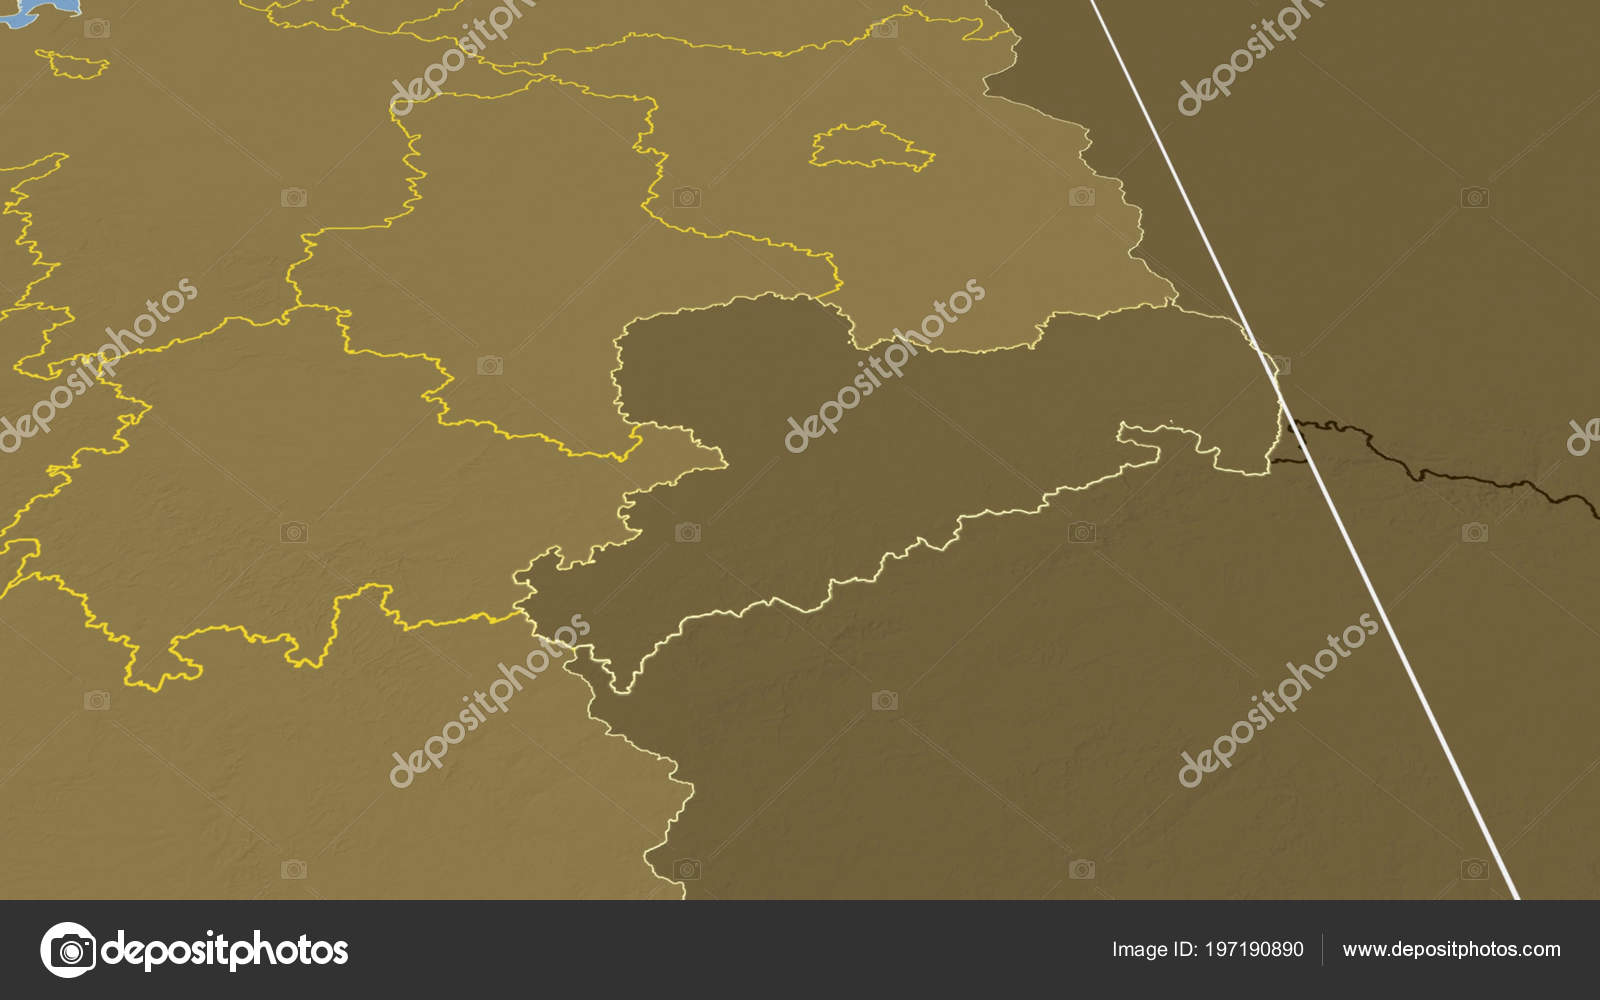 Elevation Map Of Germany.Sachsen Region Germany Outlined Bilevel Elevation Map Stock Photo